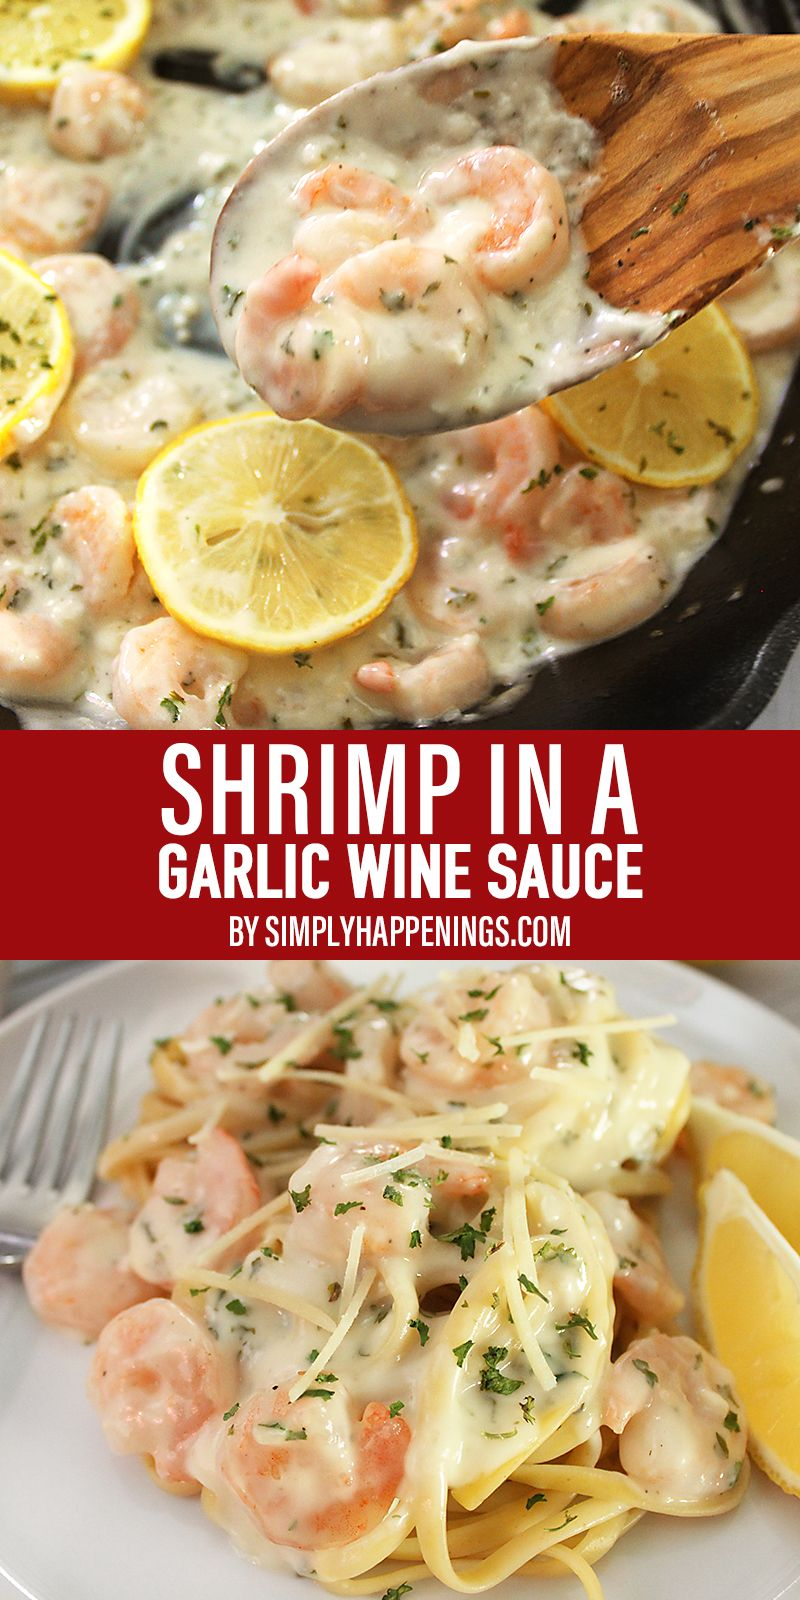 Shrimp in Garlic Wine Sauce